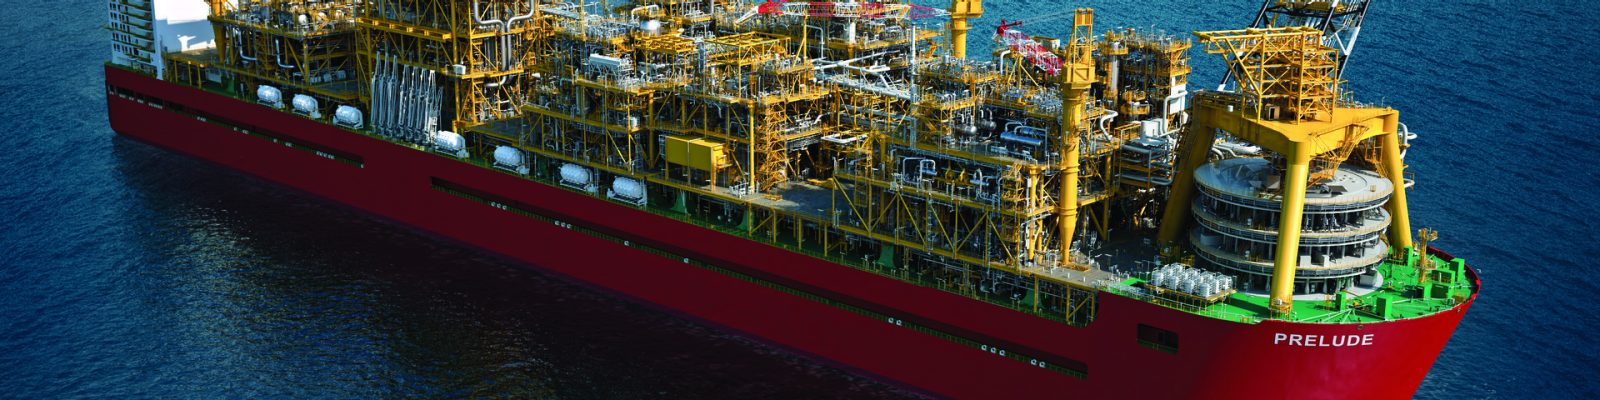 Digital impression of Prelude FLNG facility at sea